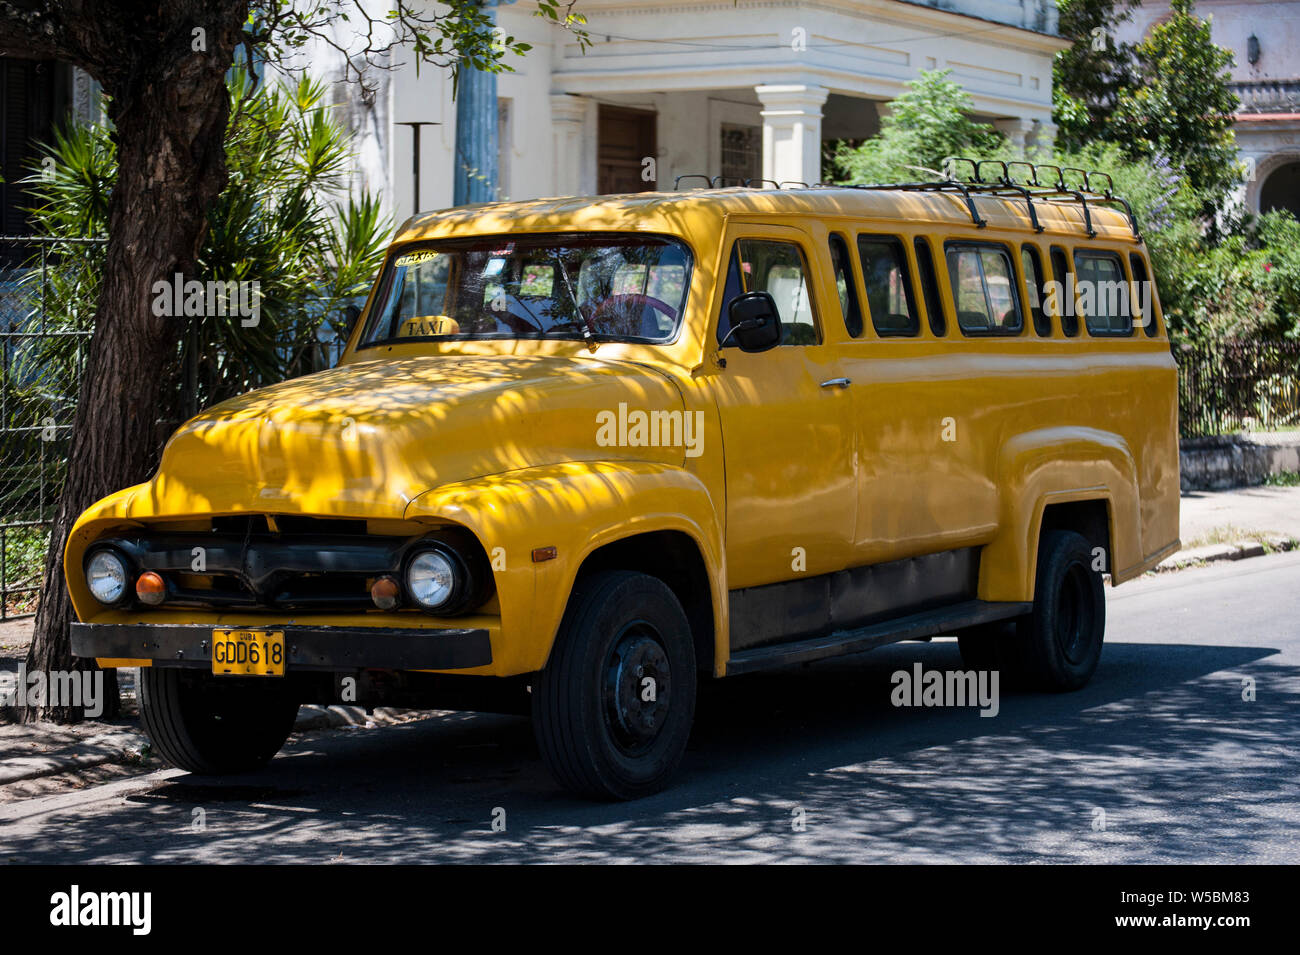 Station Wagon High Resolution Stock Photography And Images Alamy